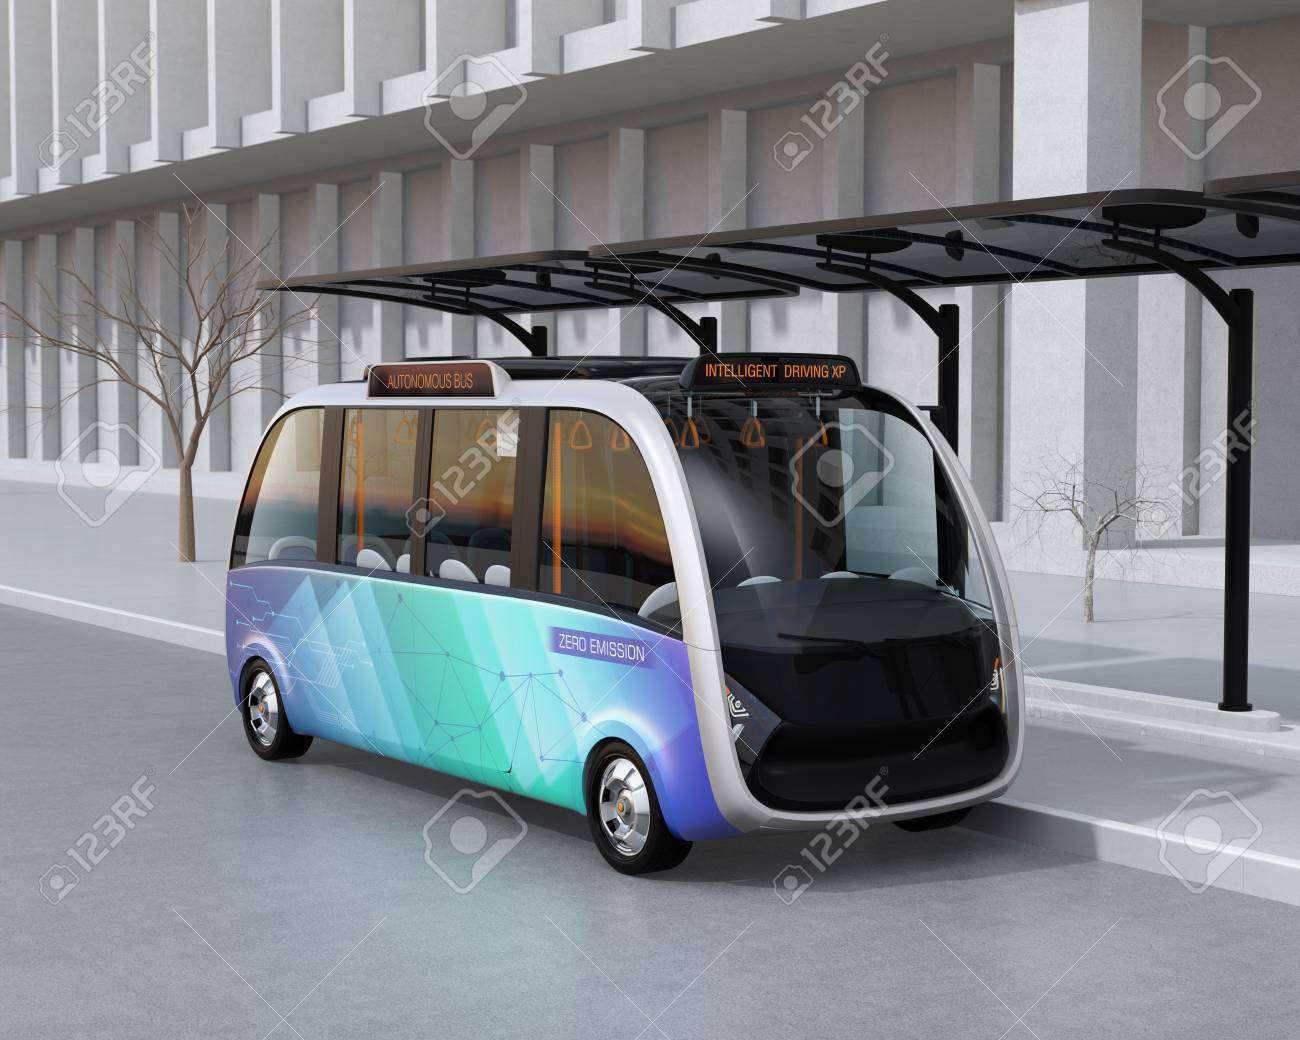 Self-driving shuttle bus waiting at bus station. The bus station equipped with solar panels for electric power. 3D rendering image. - 94347886